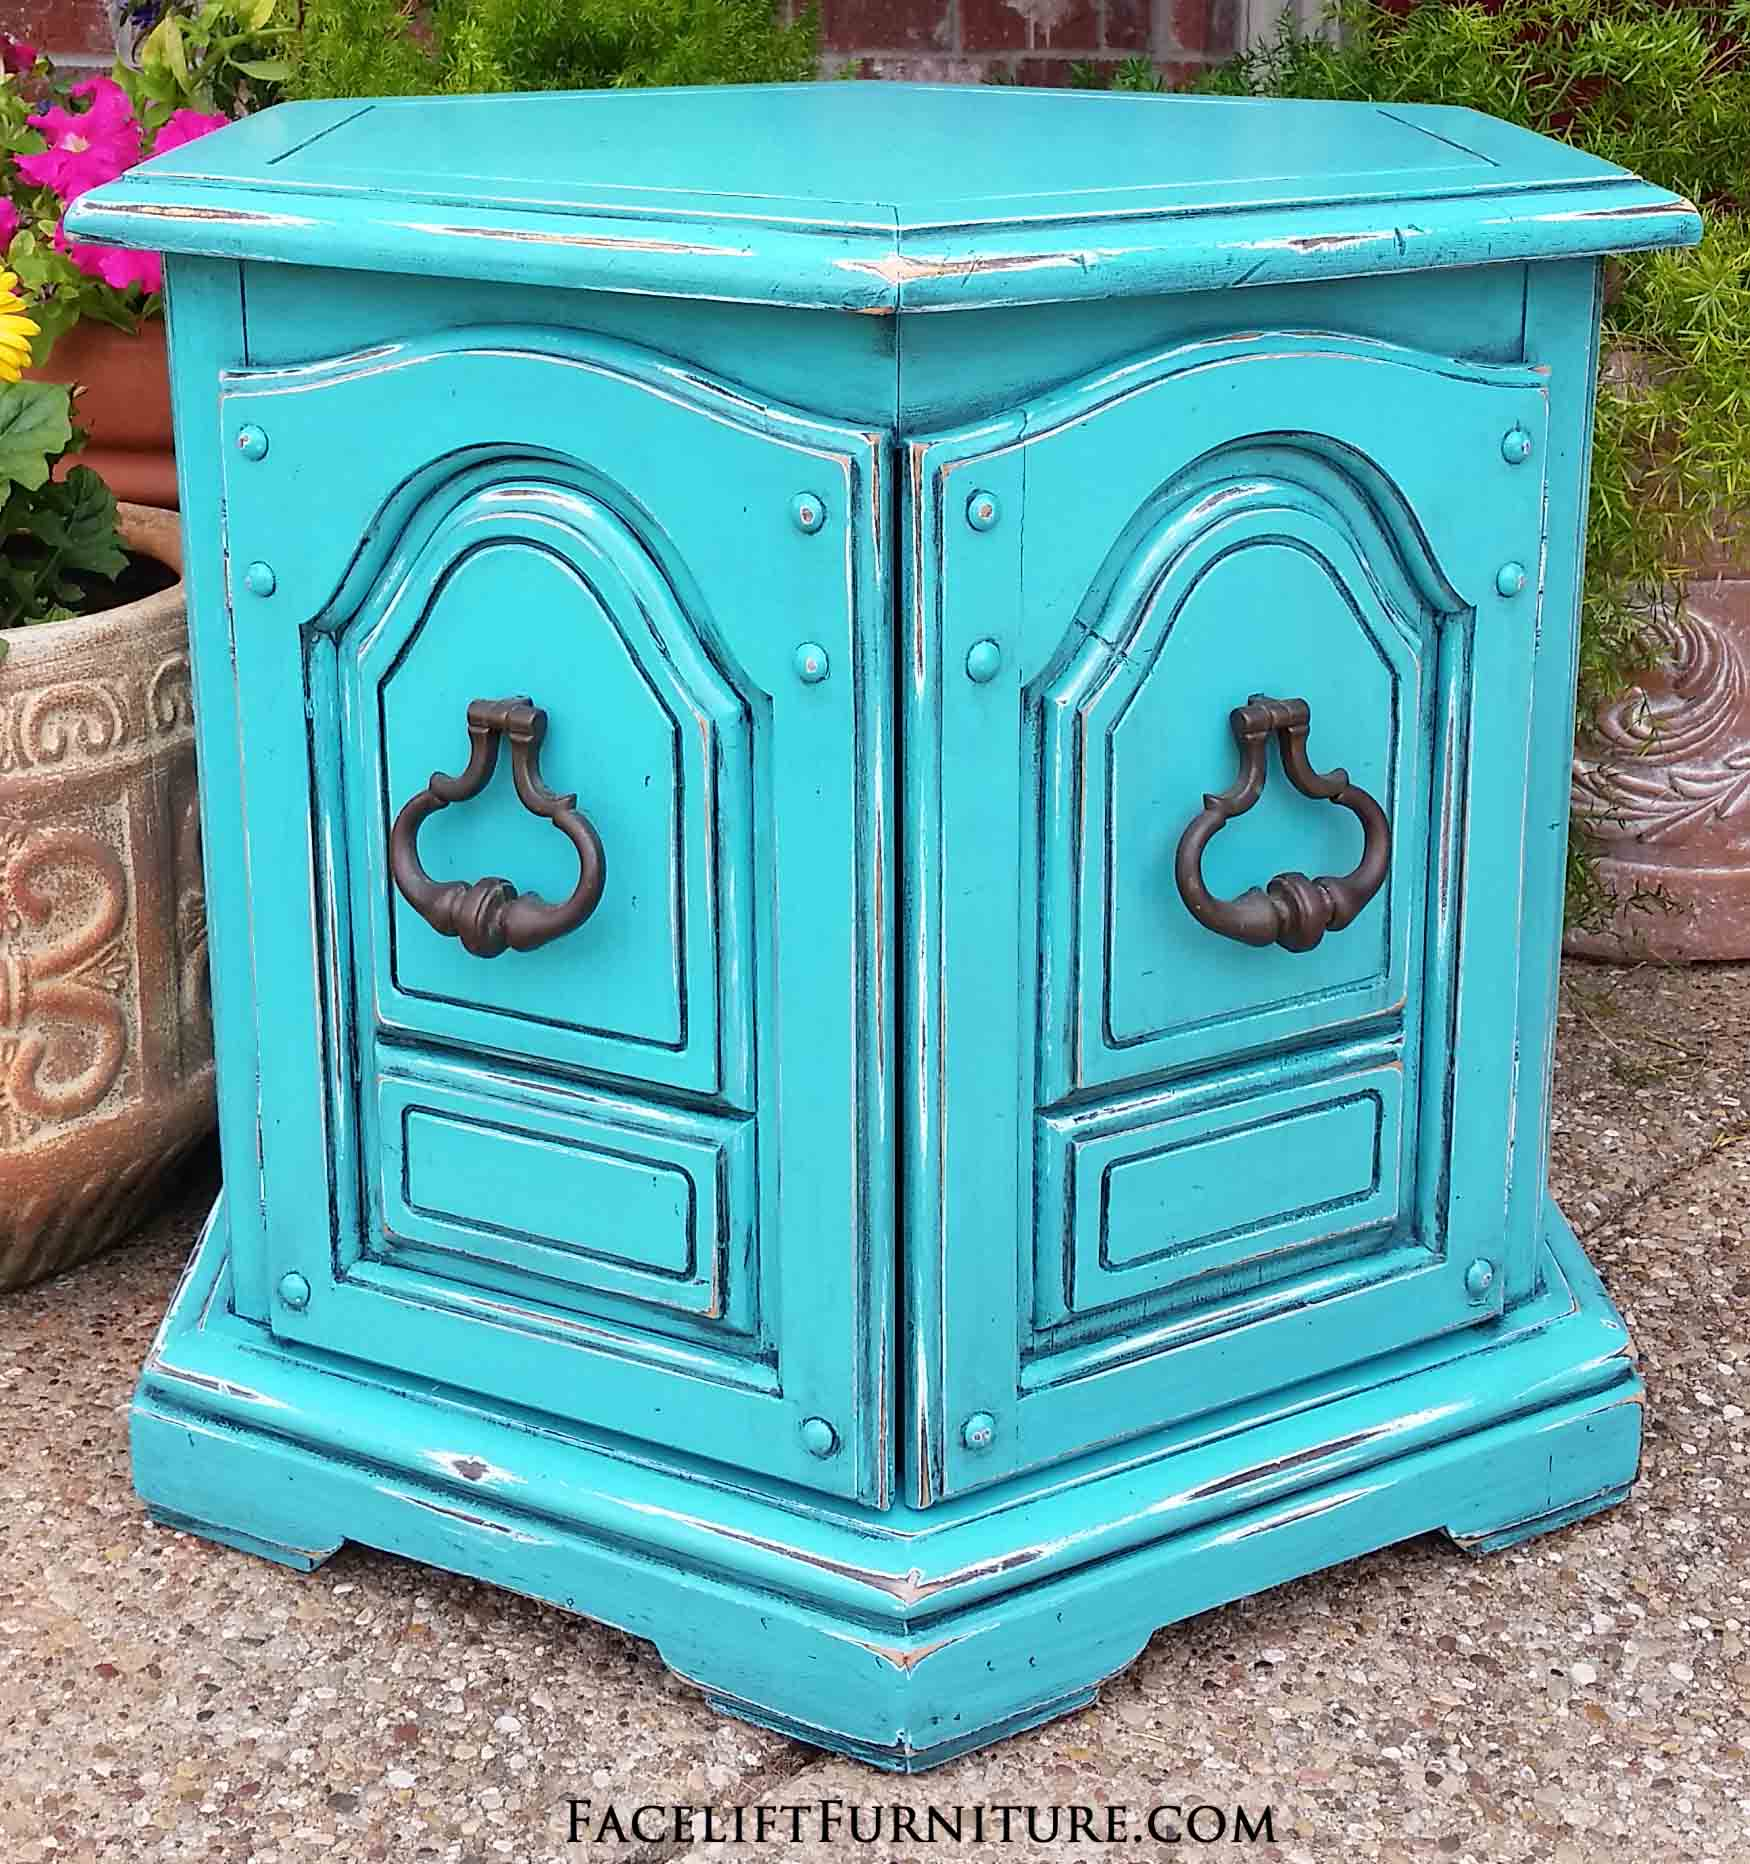 Turquoise Hexagon End Table - Facelift Furniture